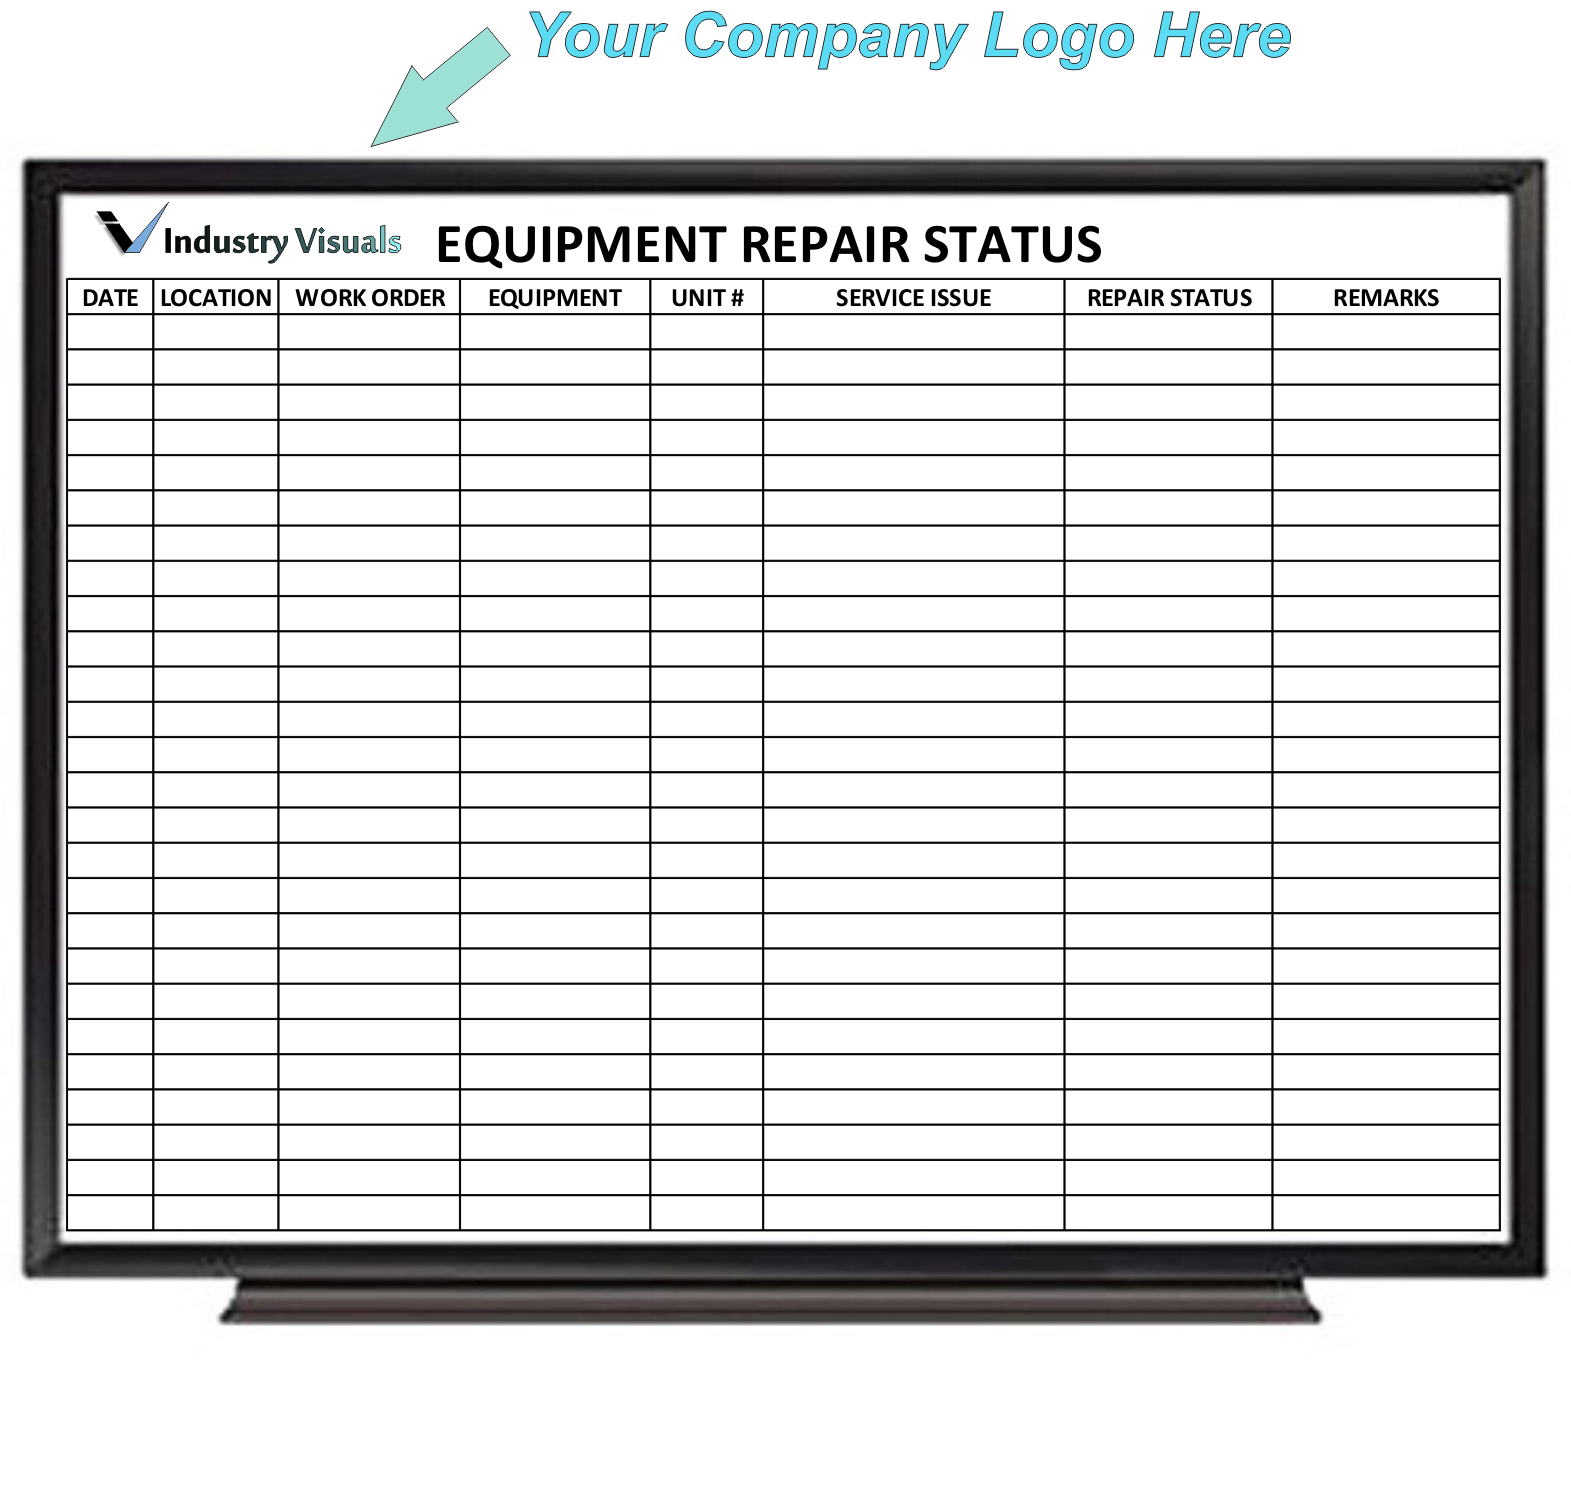 Maintenance Dry Erase Boards - Product categories - Industry Visuals